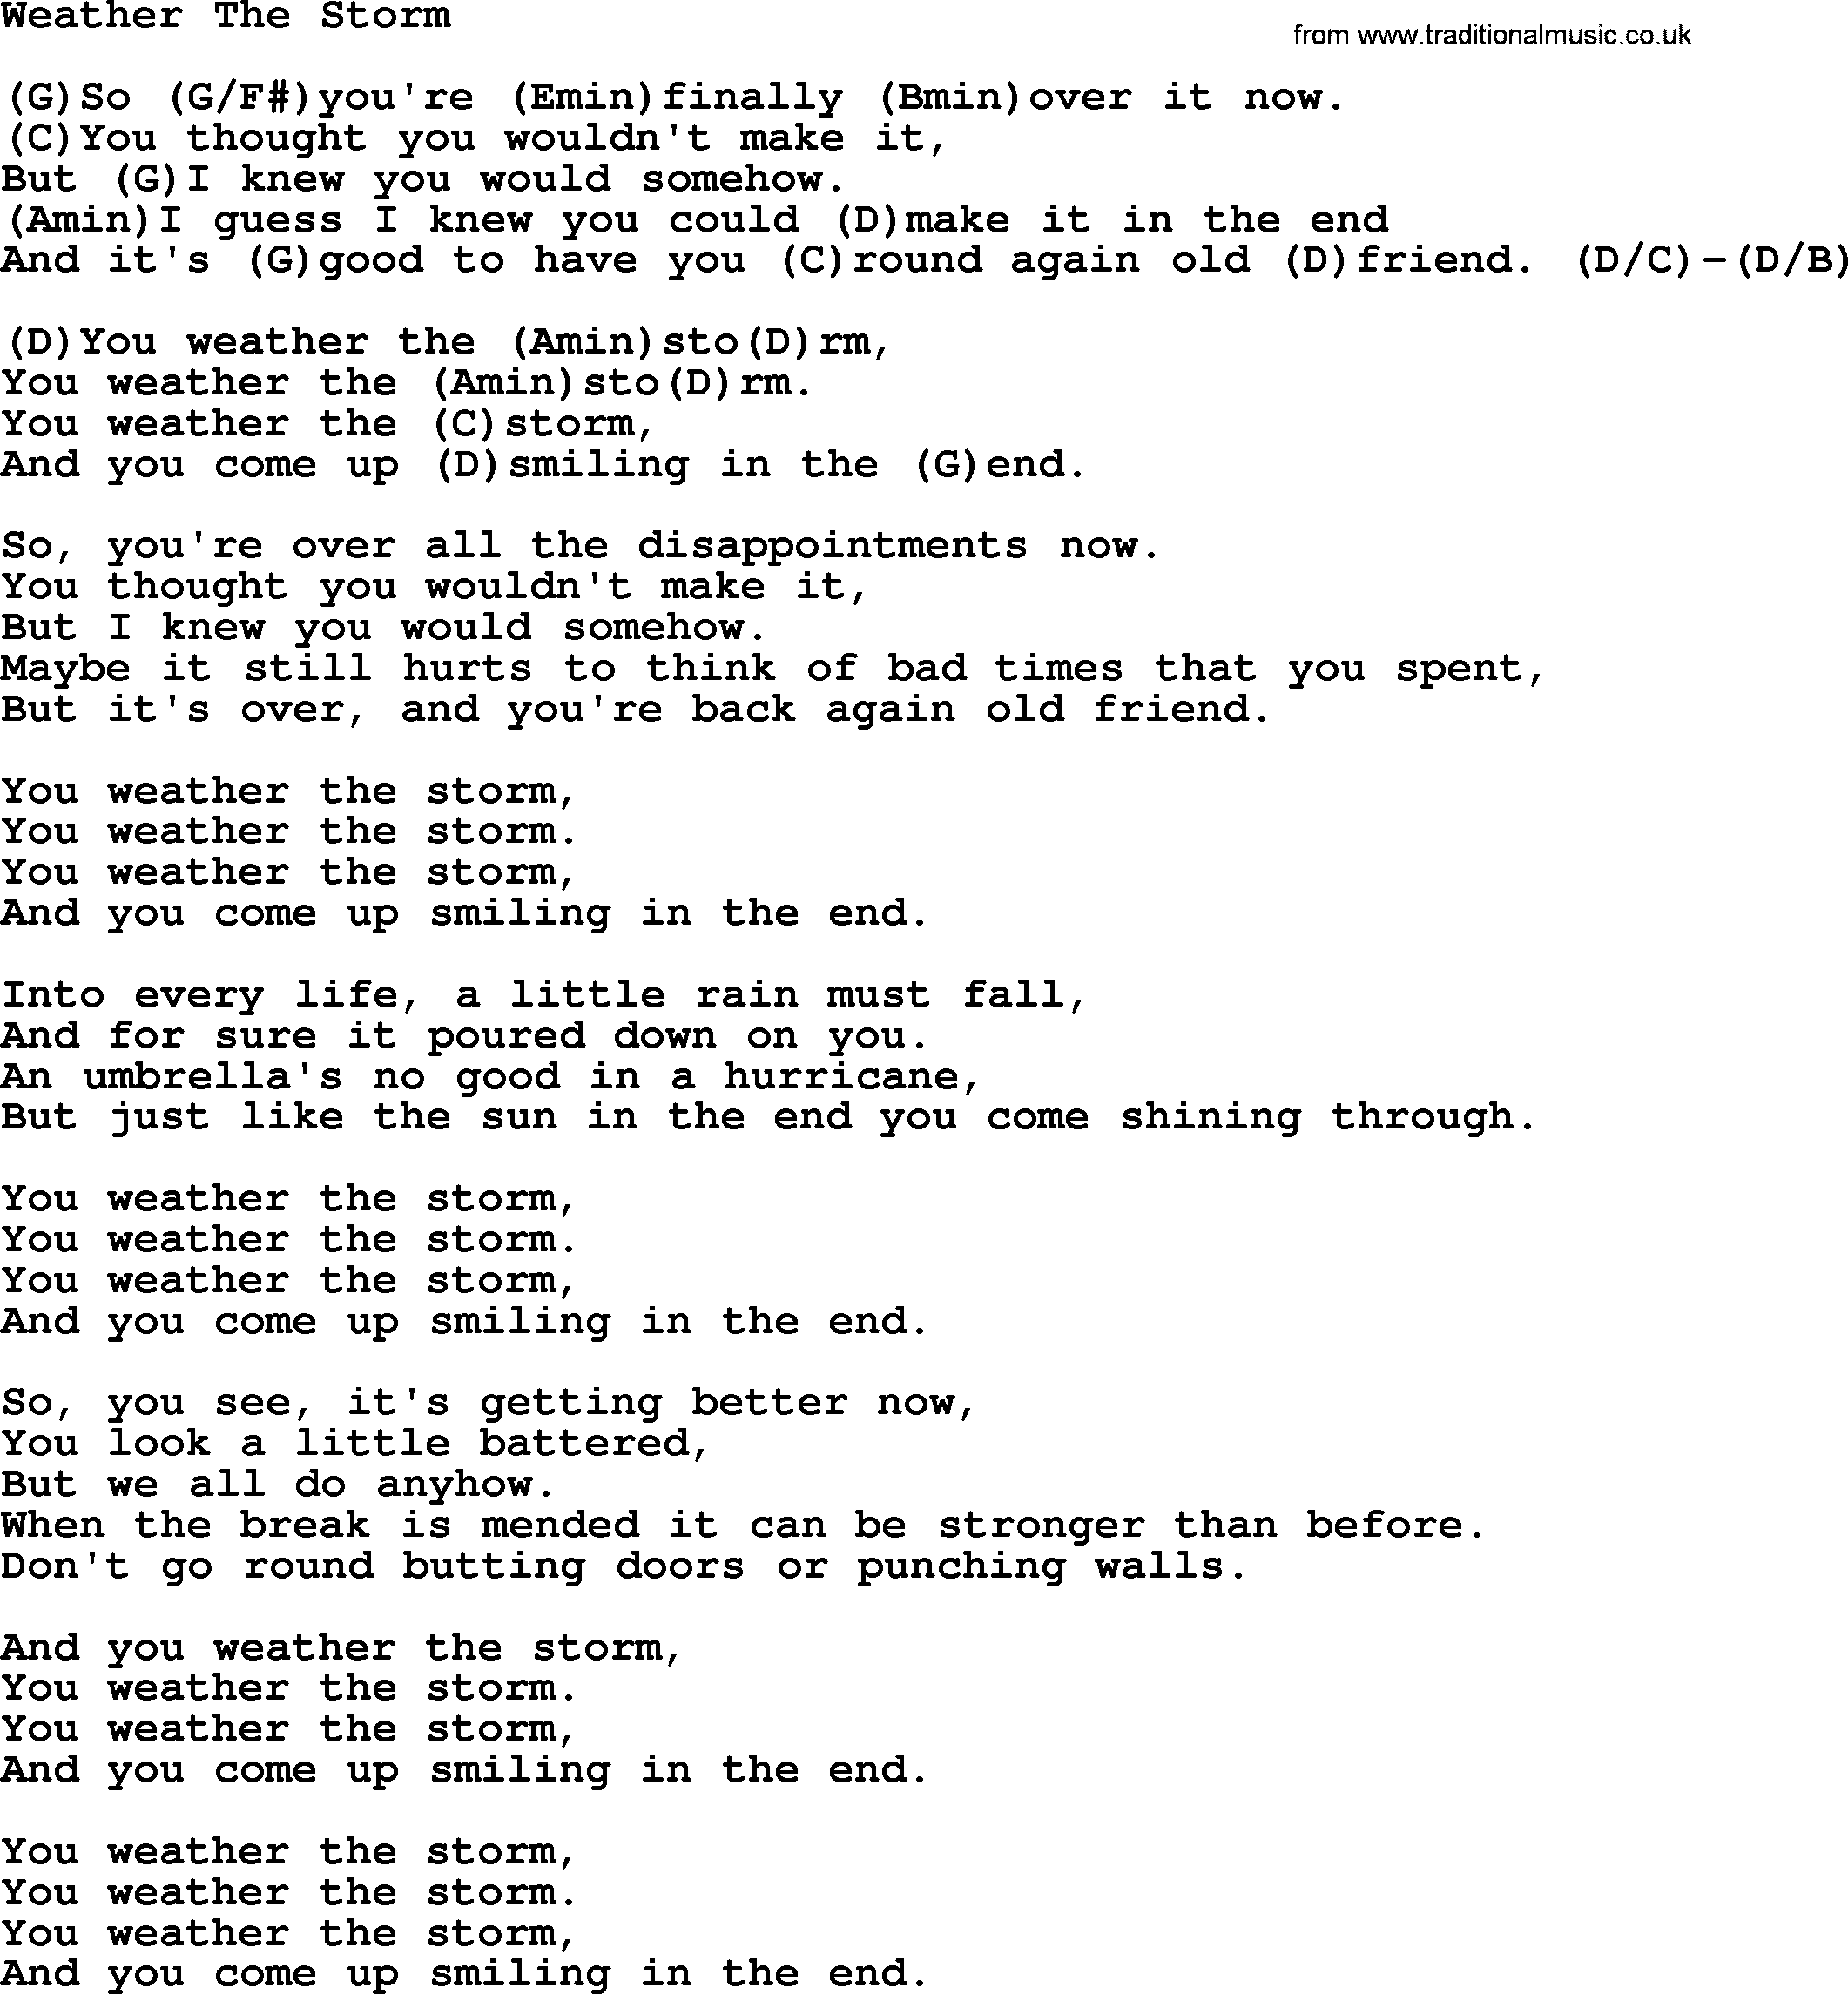 Weather The Storm By Ralph Mctell Lyrics And Chords